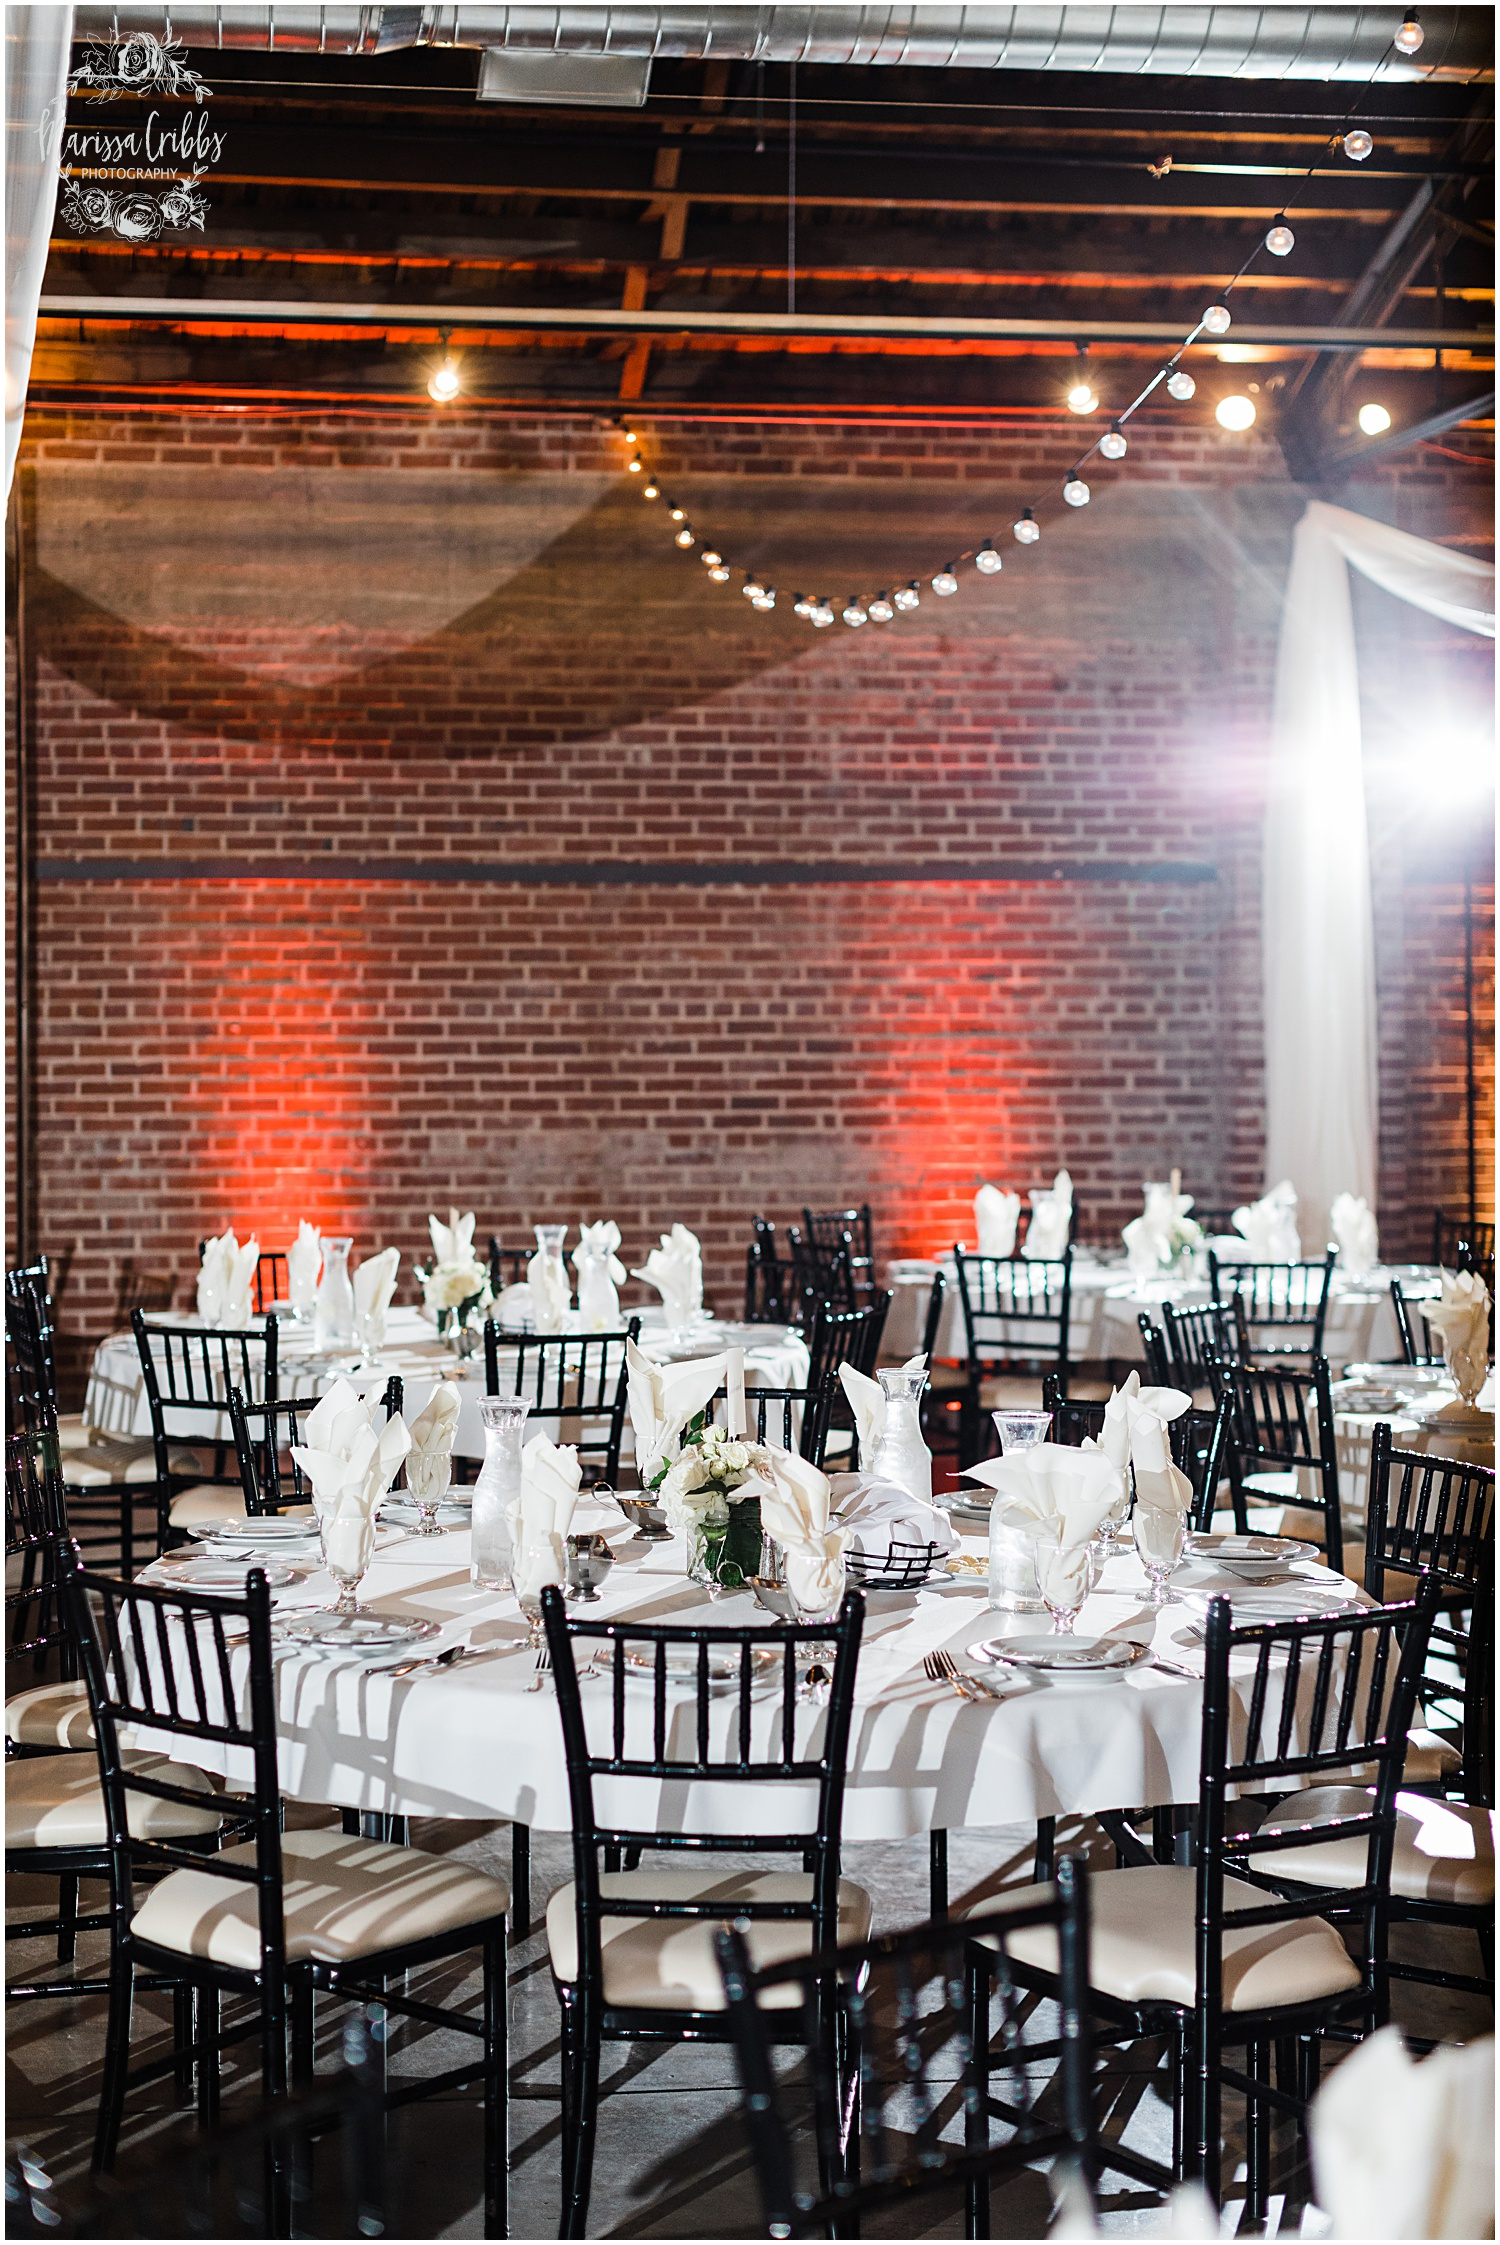 ABBY & CHARLIE WEDDING | THE HUDSON EVENT SPACE WEDDING | MARISSA CRIBBS PHOTOGRAPHY_7559.jpg